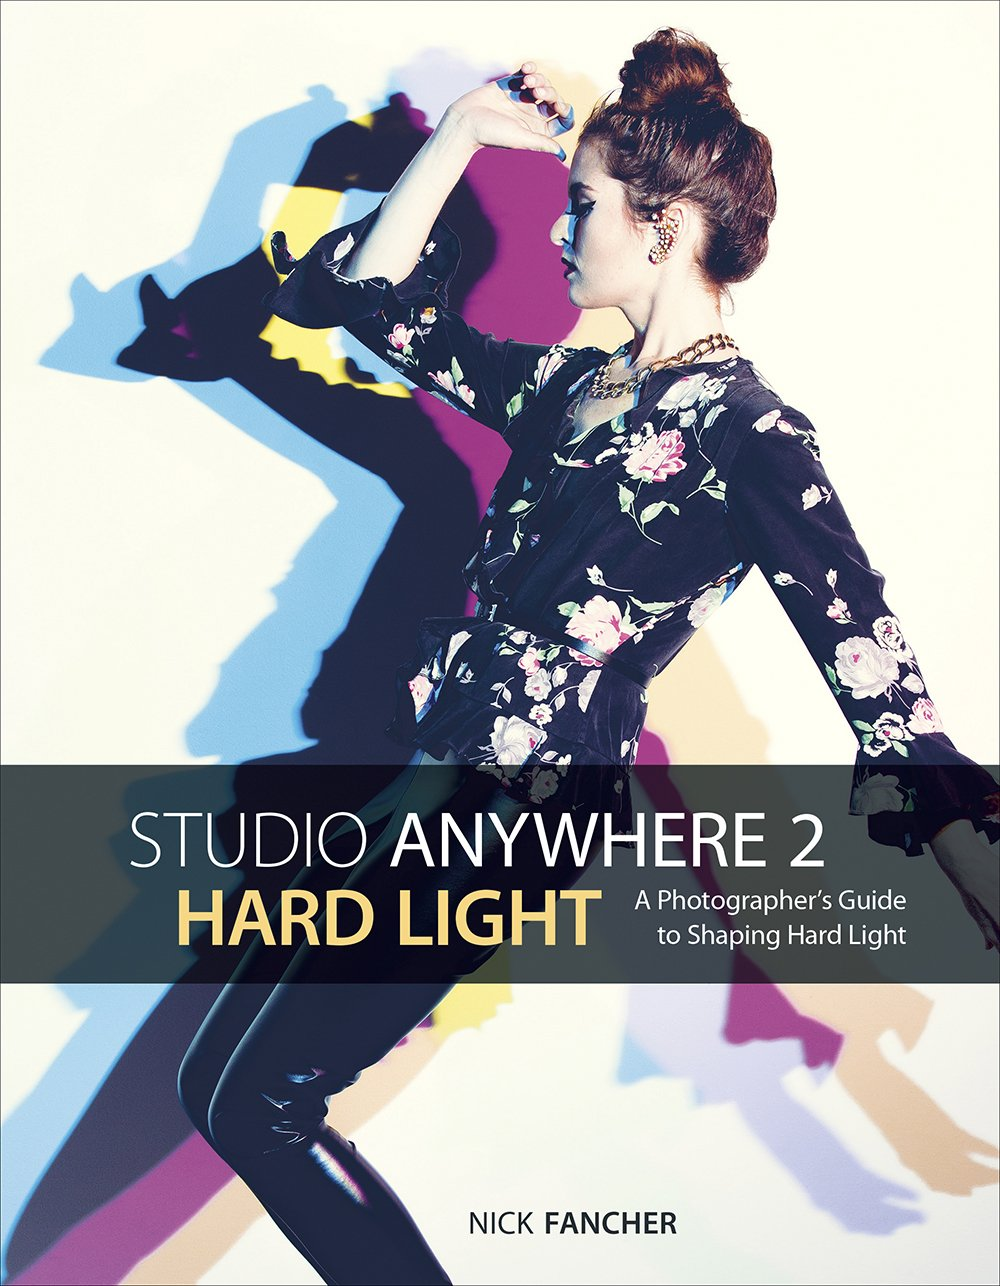 Studio Anywhere 2 Coming January 2017, via Rocky Nook. Pre-order on Amazon or Barnes & Noble.